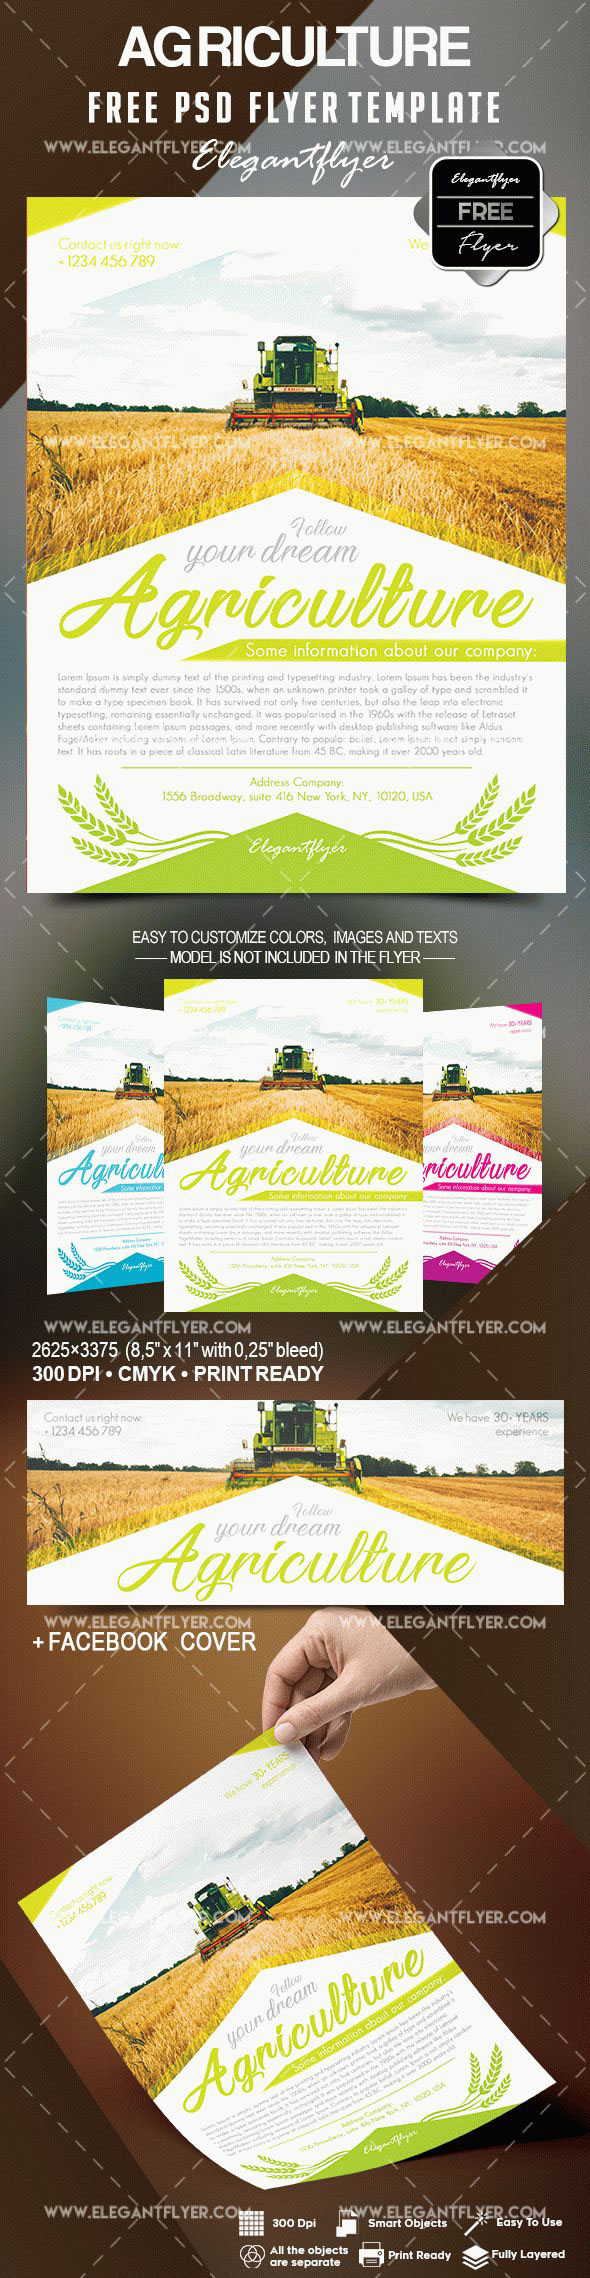 free agriculture flyer templates on behance - Agriculture Brochure Templates Free